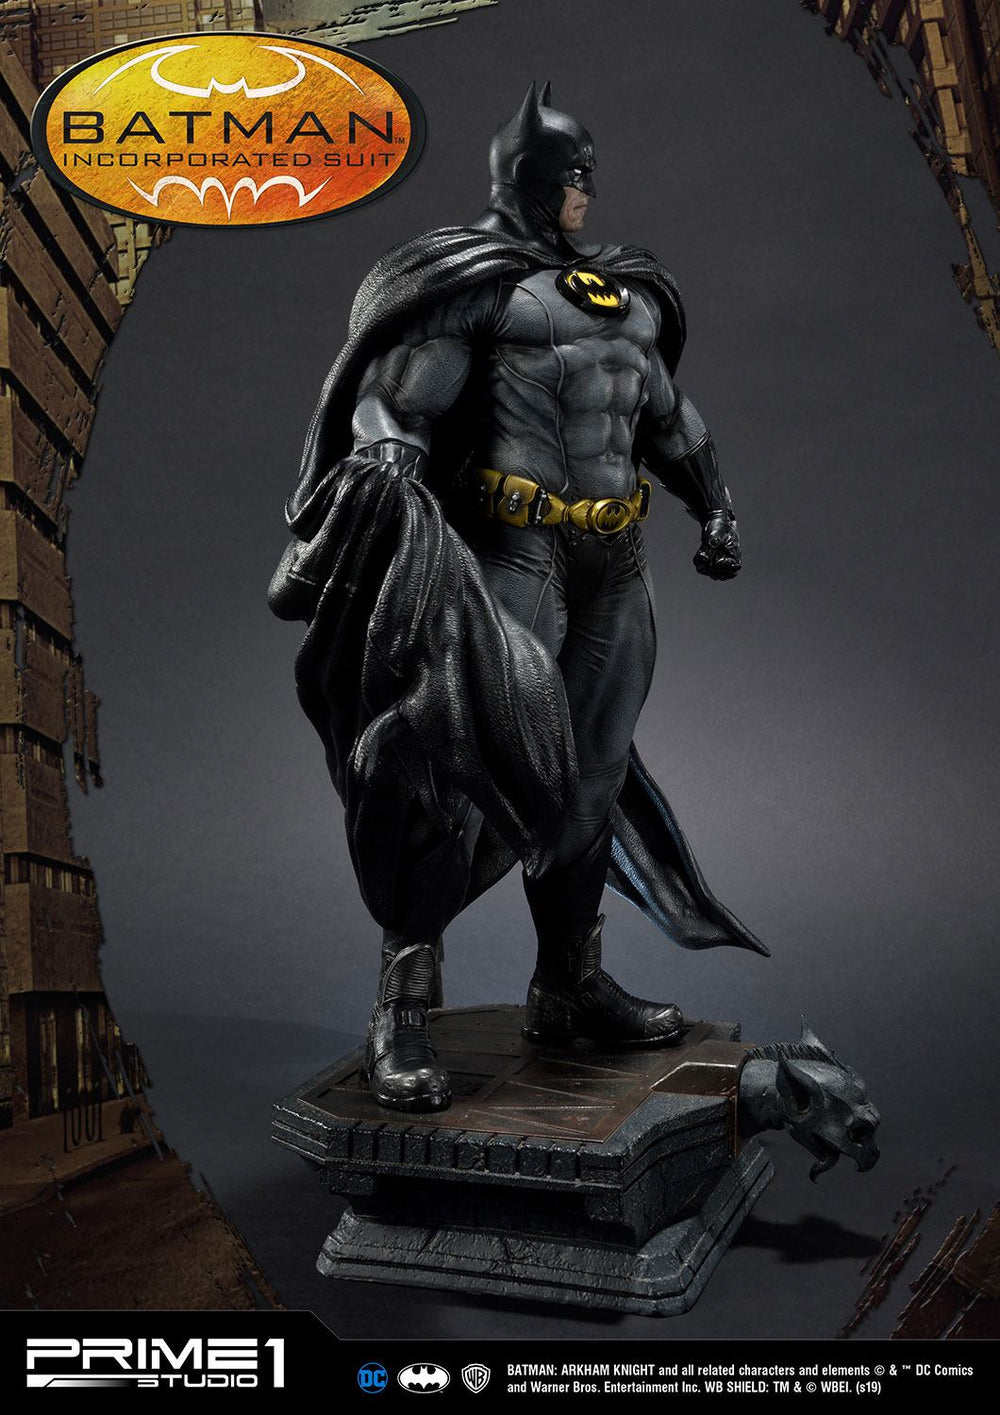 Prime 1 Studio Batman Arkham Knight Batman Incorporated Suit 1/5 Statue